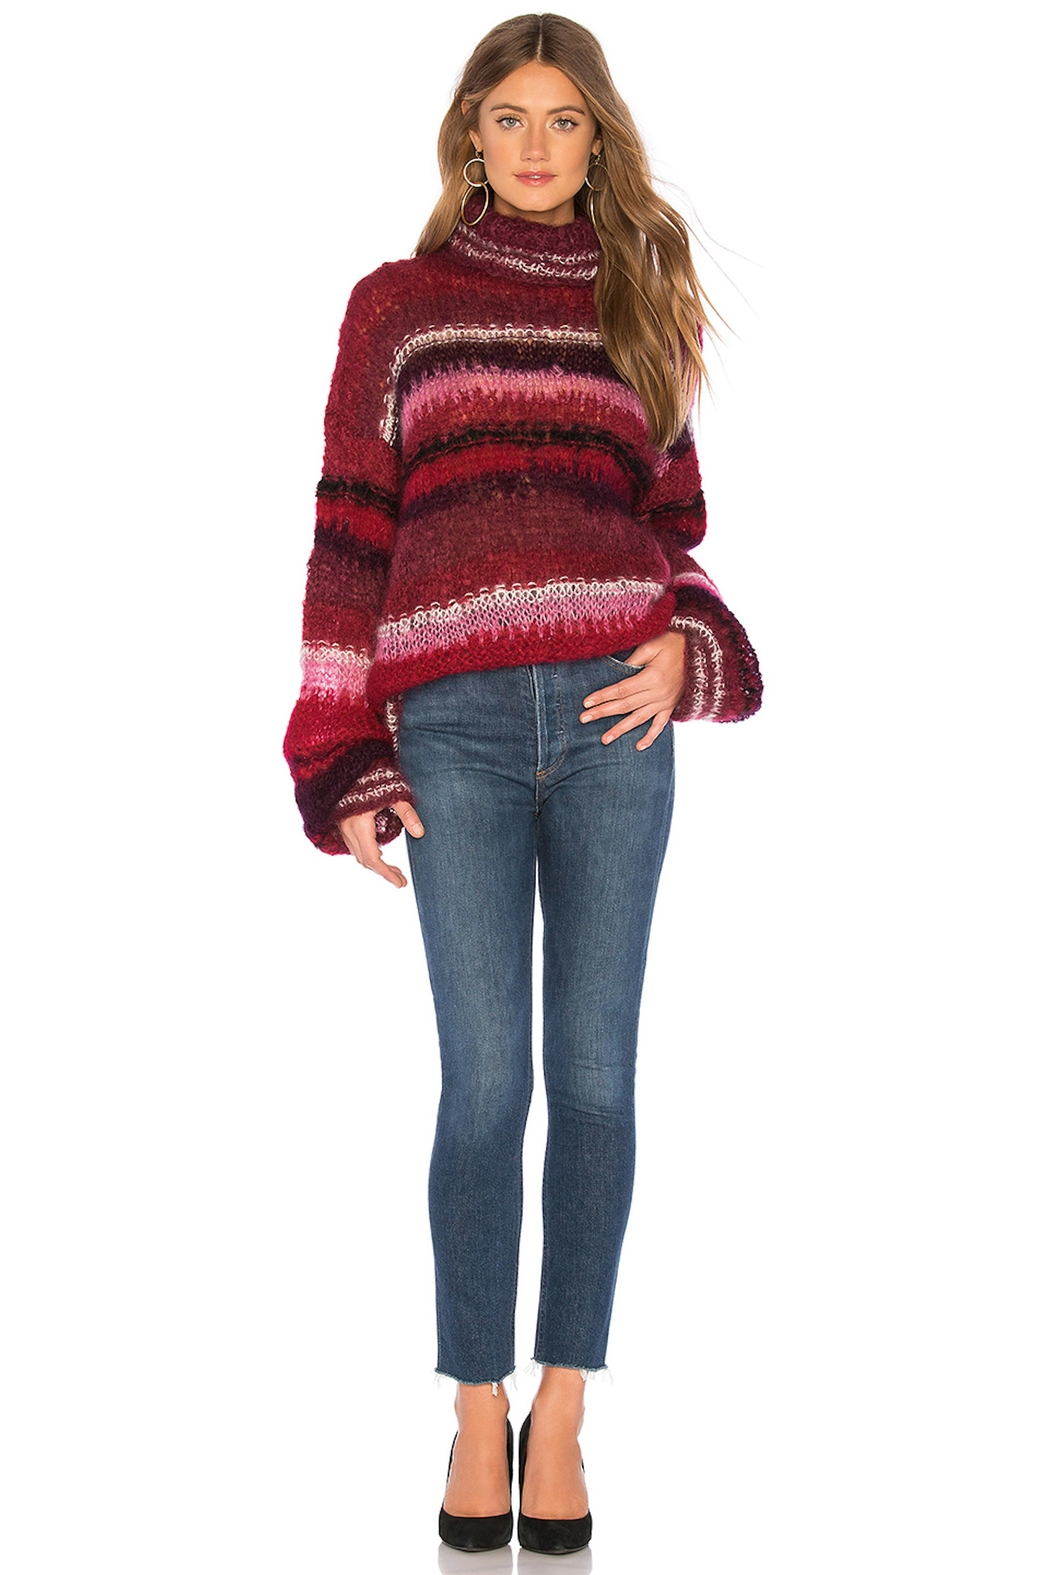 One Clothing Mohair Striped Sweater - Main Image